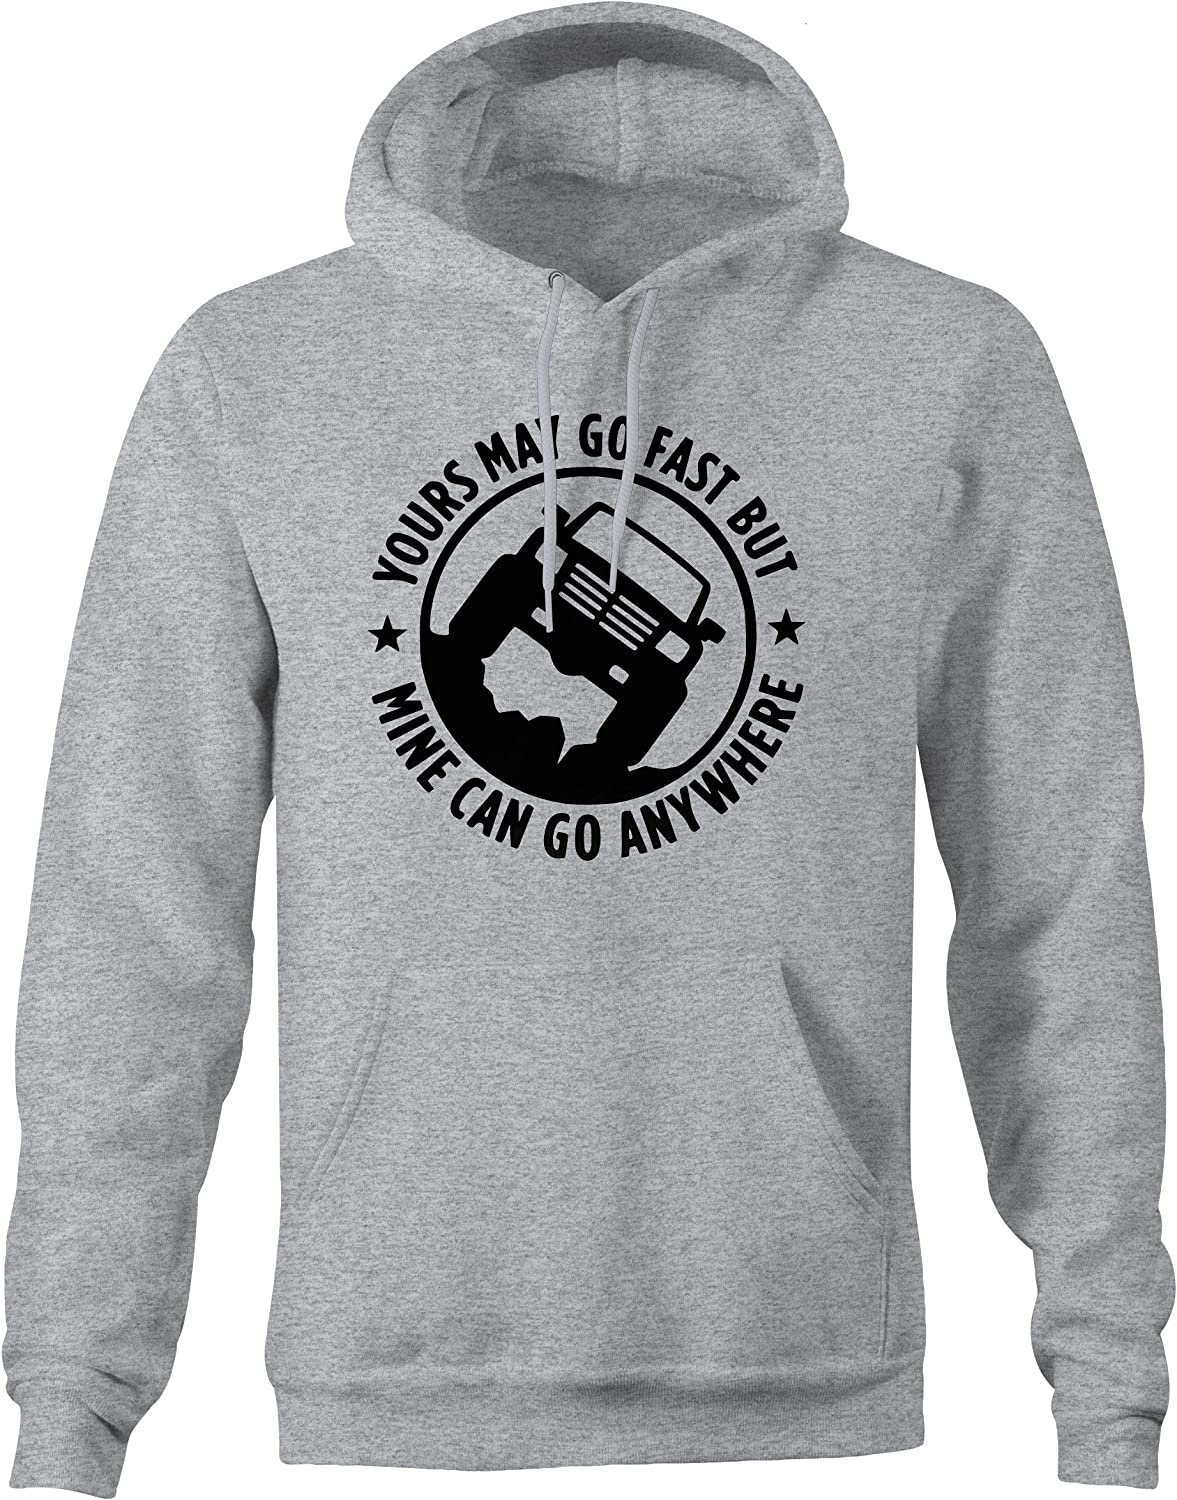 OS Gear American May Go Fast Go Anywhere Pickup Truck Hoodie for Men